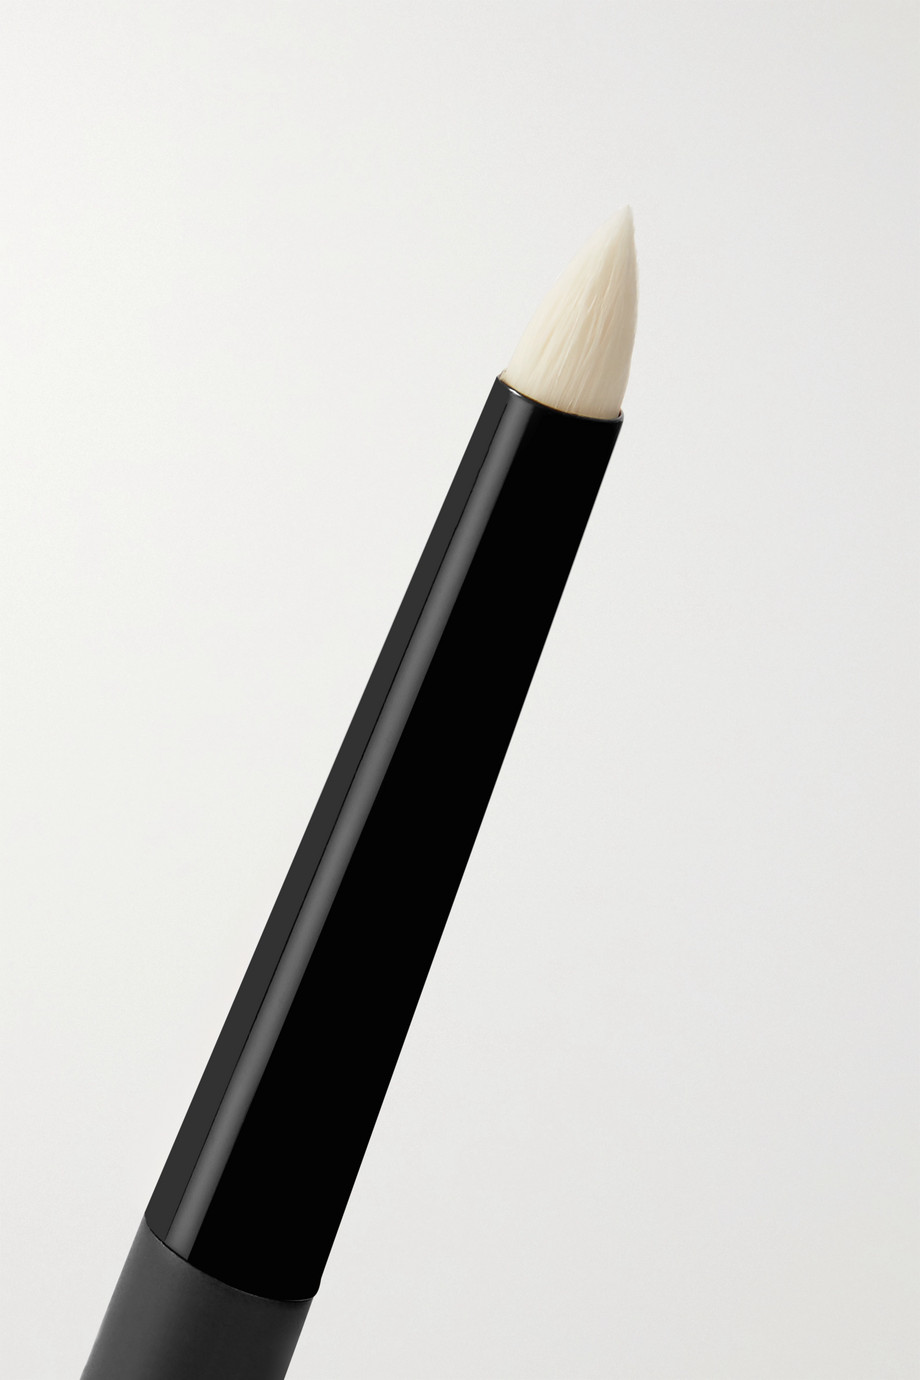 RAE MORRIS Jishaku 9.1 Vegan Pencil Point Shader Brush